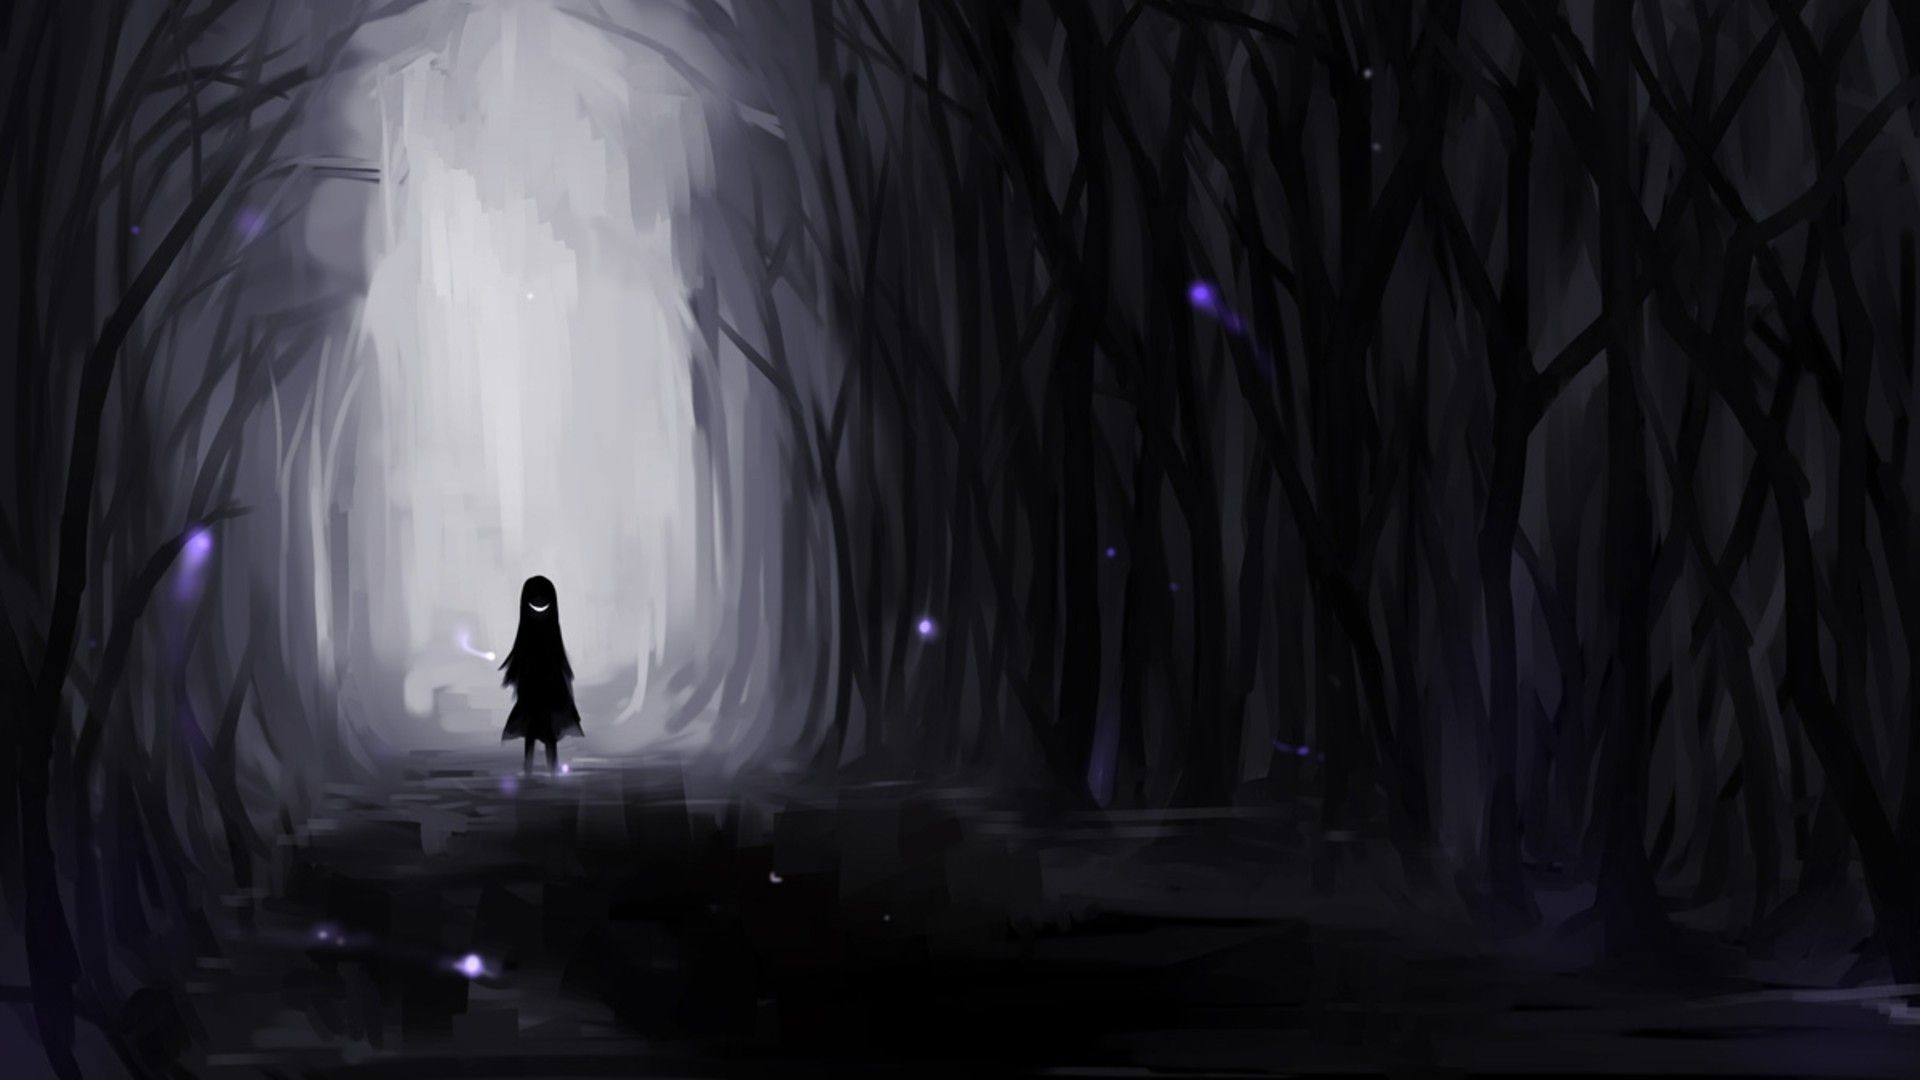 1920x1080 anime-dark-angel-boy-wallpapers-picture.jpg (1920×